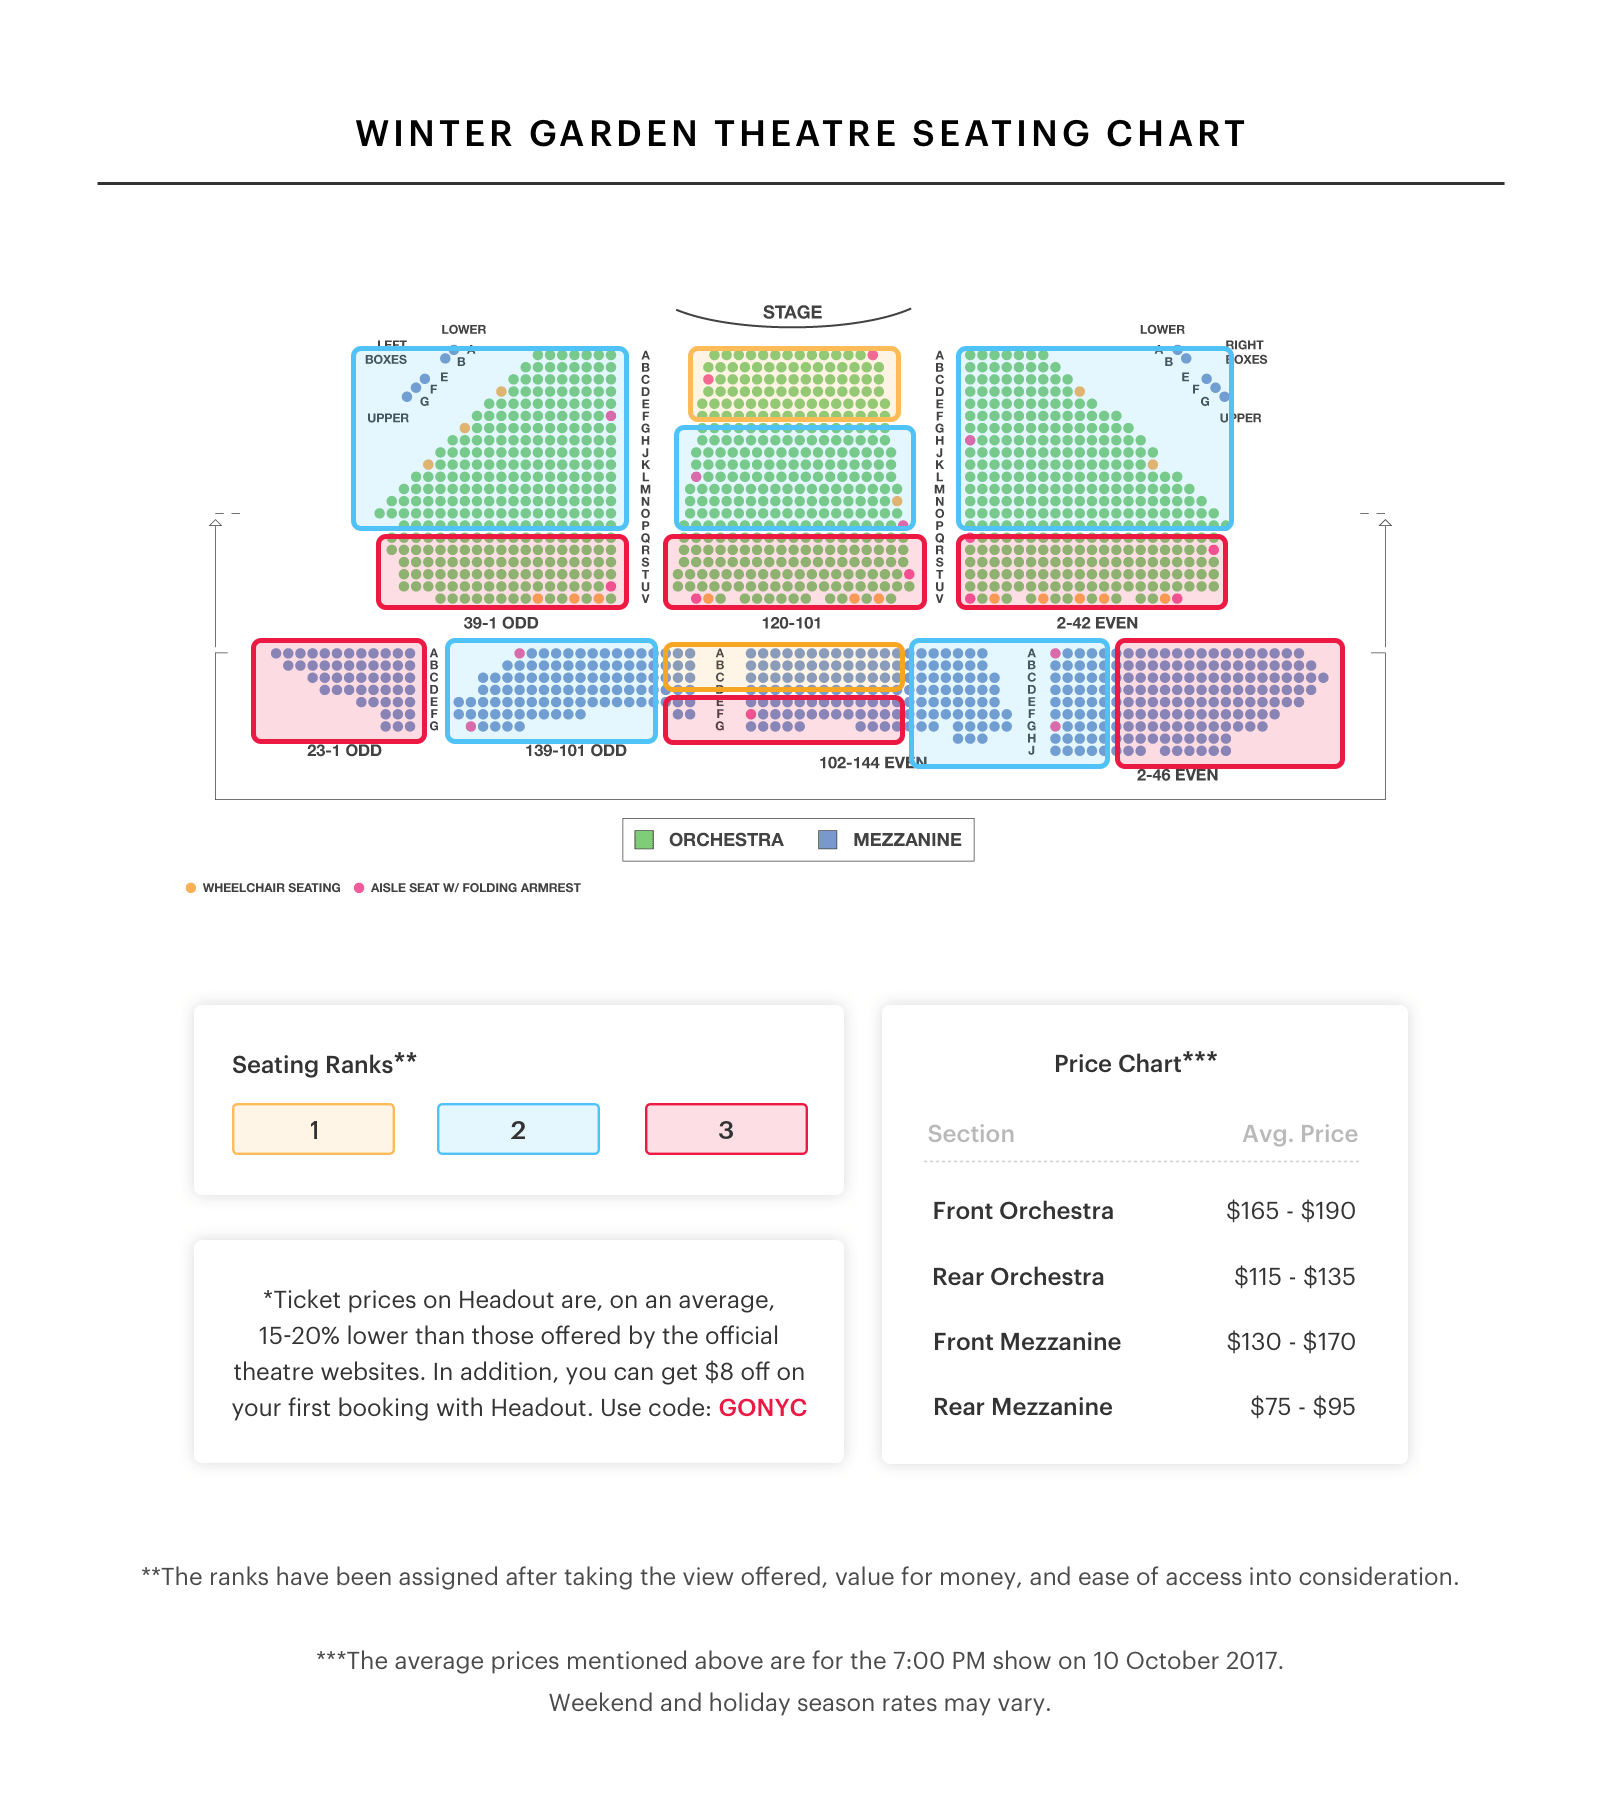 School of rock guide winter garden theatre seating chart